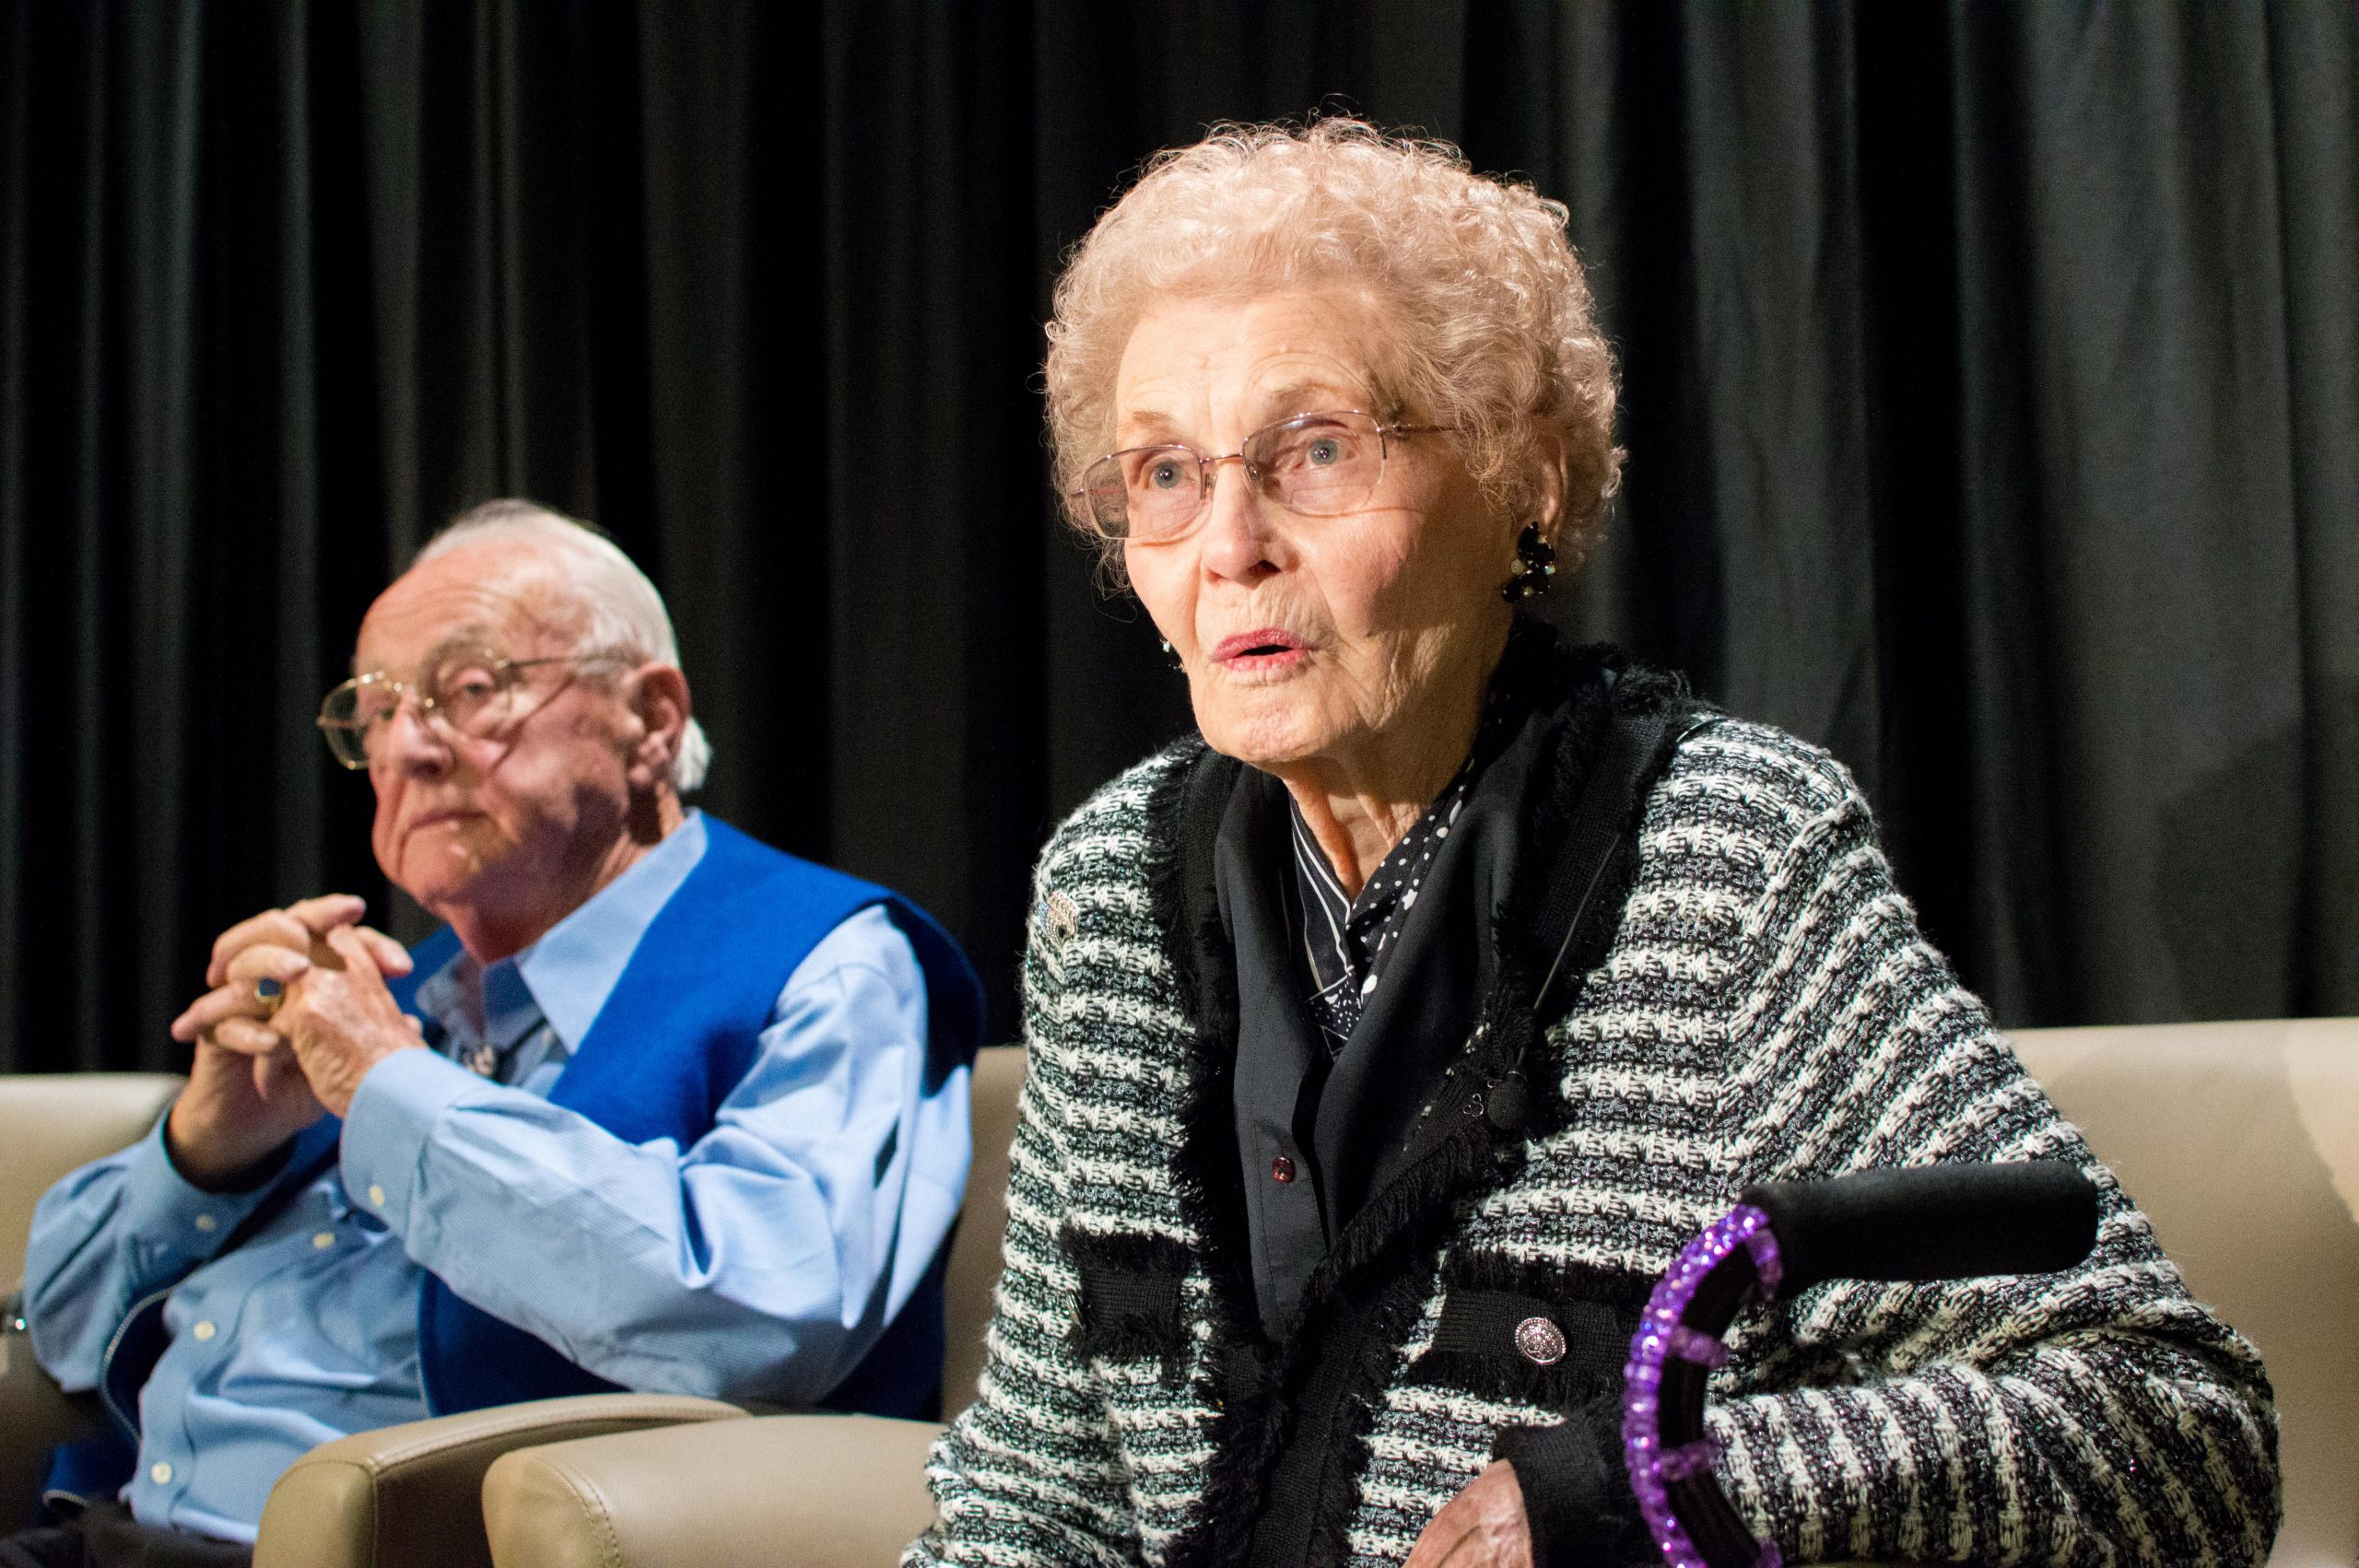 World War II veterans share two sides of history at CSU